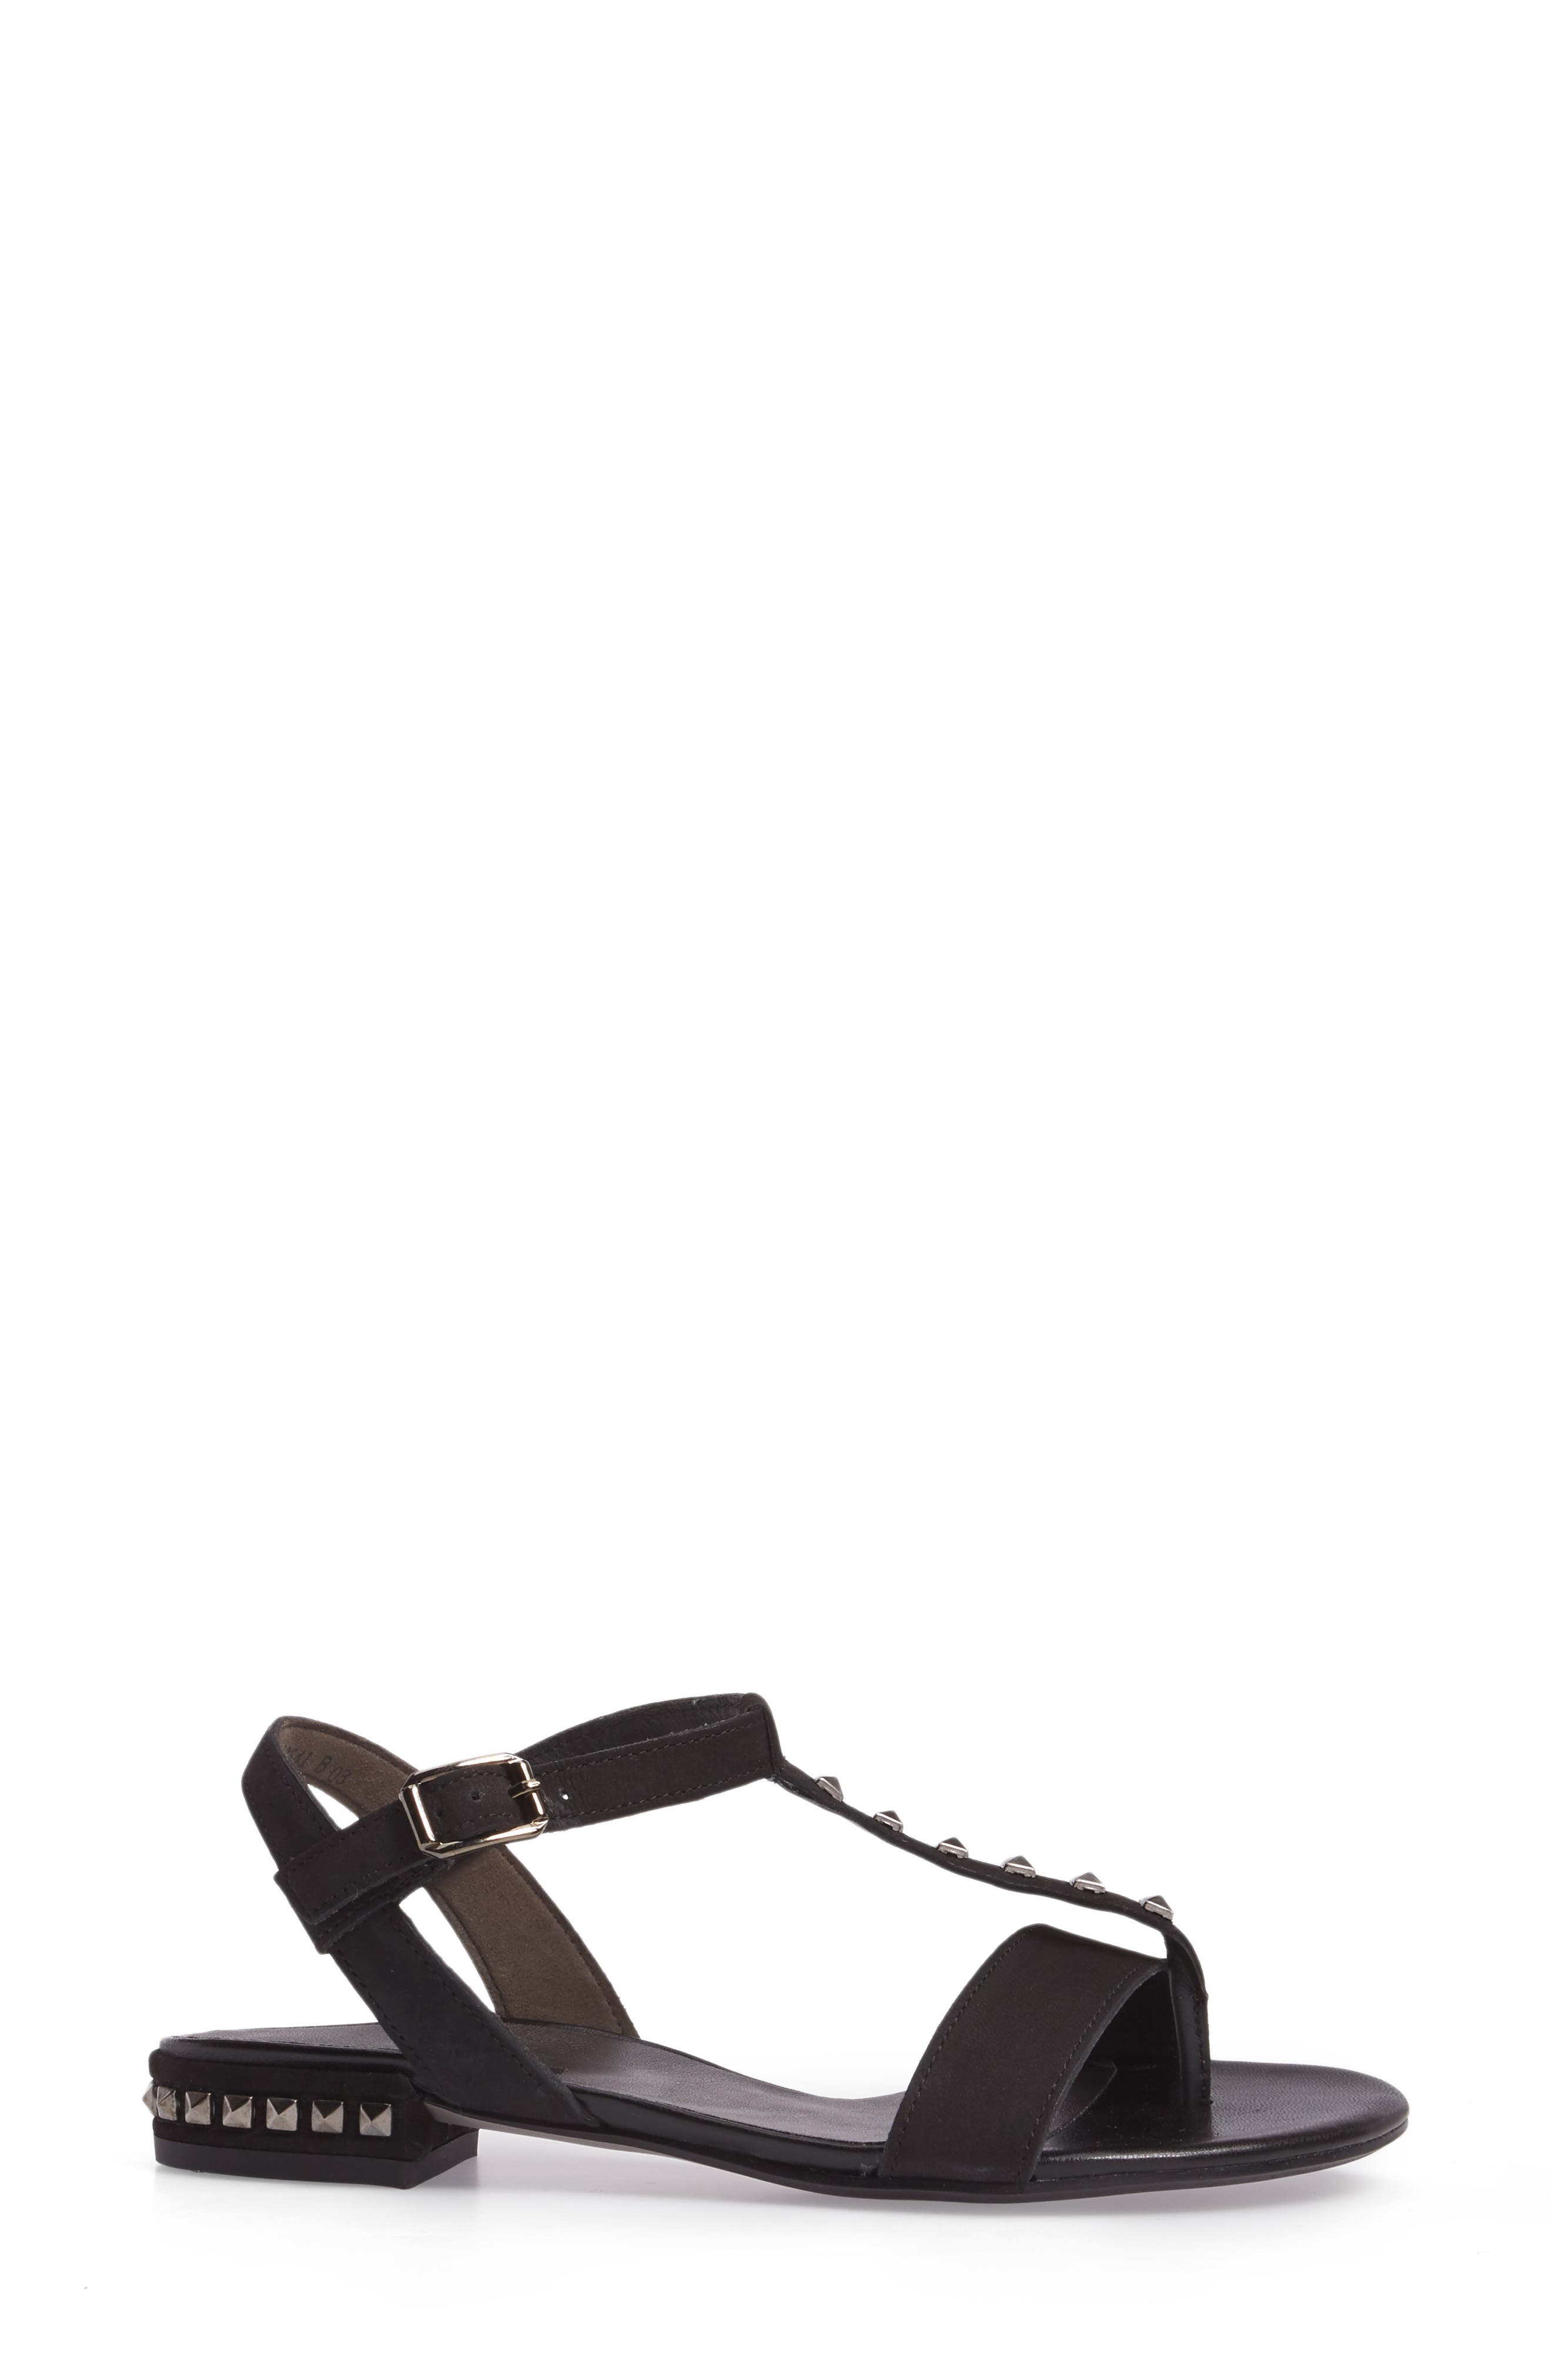 Nepal T-Strap Sandal,                             Alternate thumbnail 5, color,